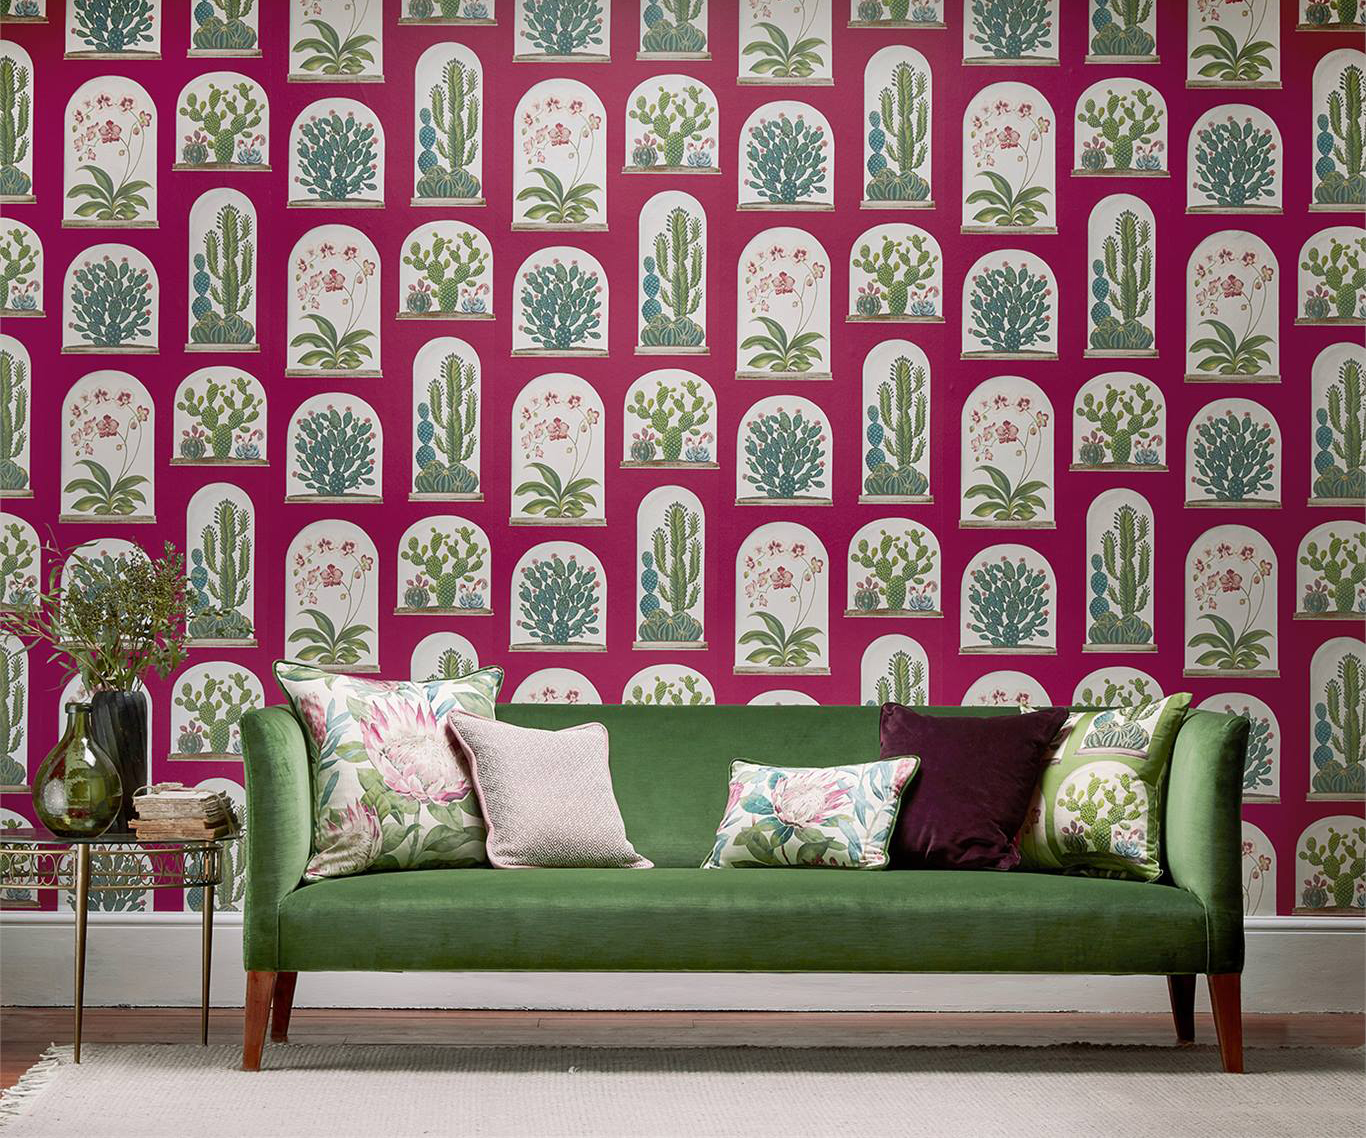 Interieur Wallpaper Buy Wallpaper Online Nz Design Your Wall Allium Interiors